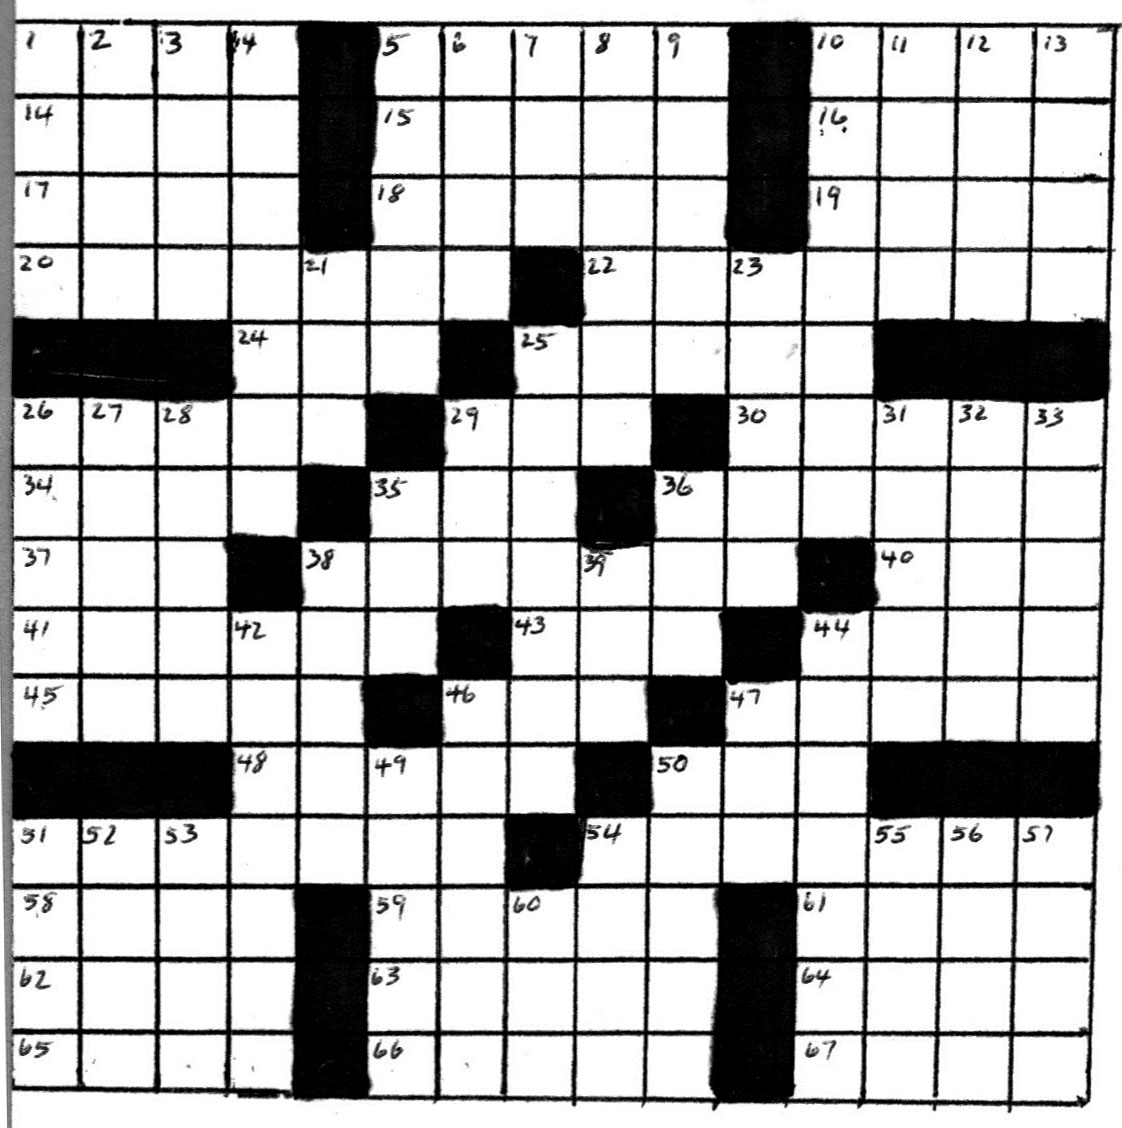 Crossword Puzzle by Bob Lee – January 2012